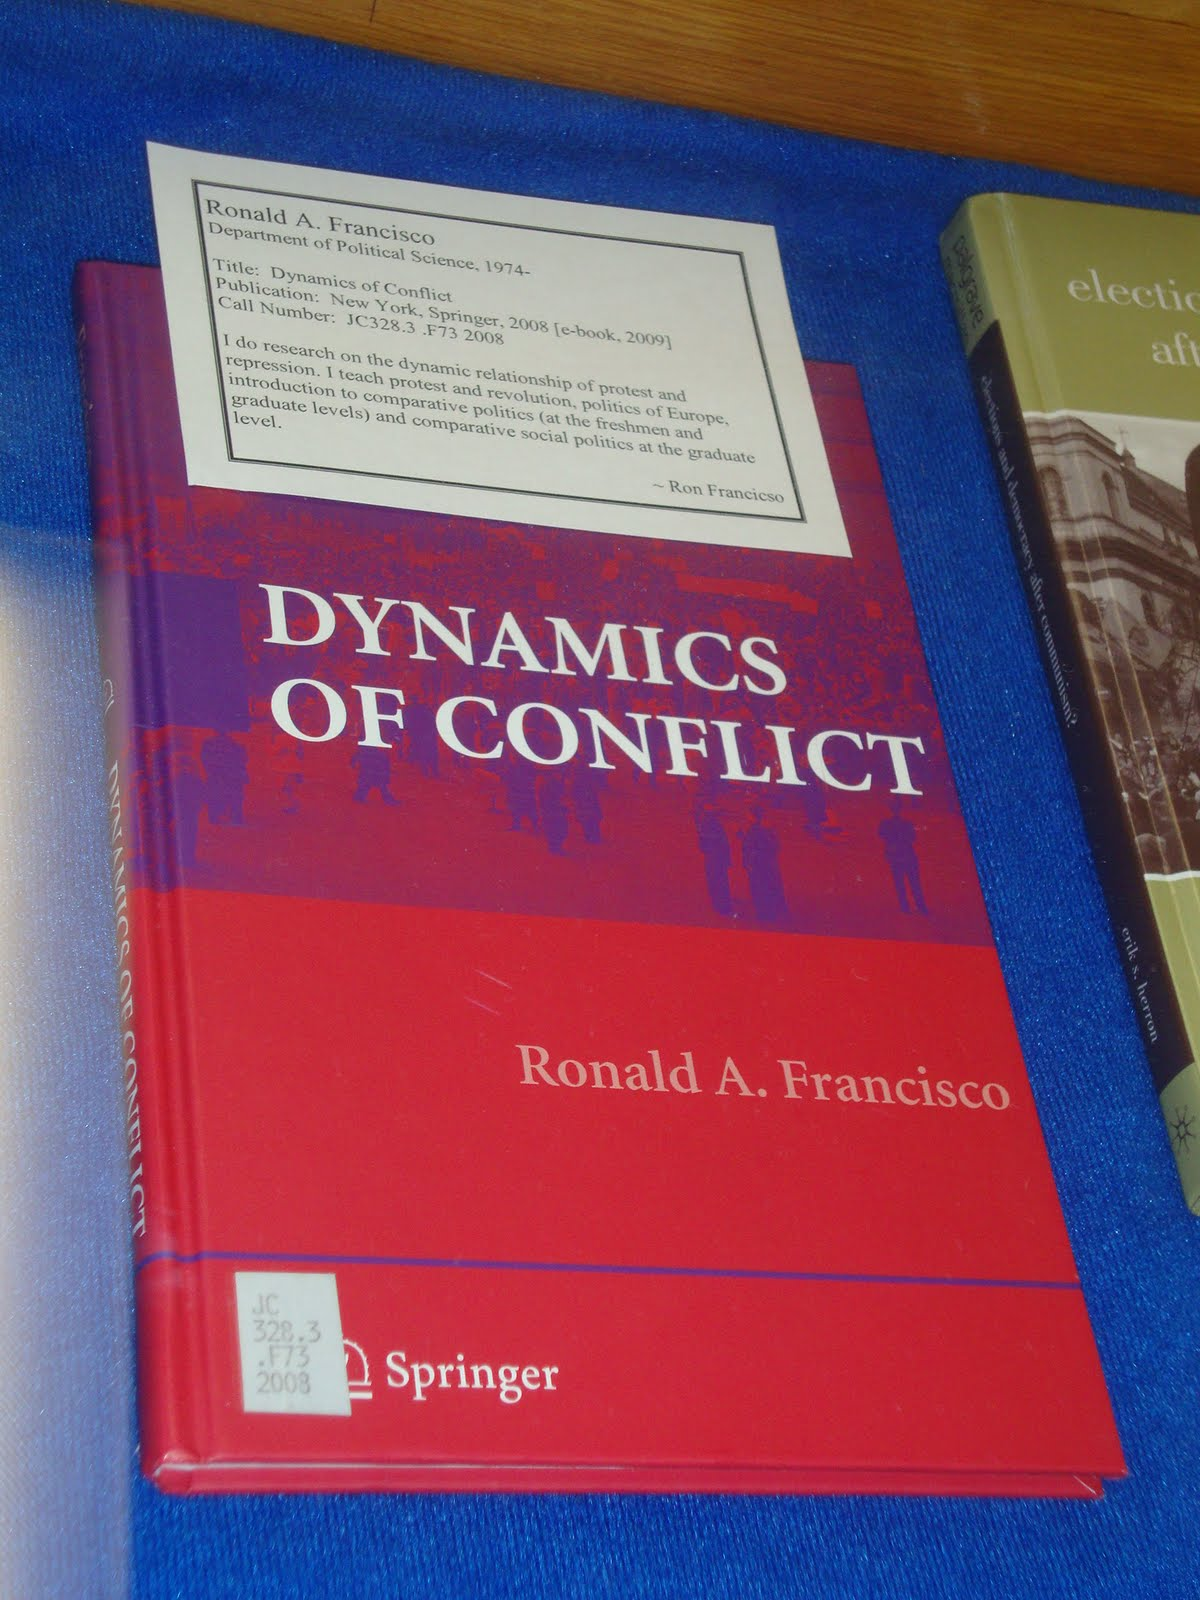 Book: Dynamics of Conflicts